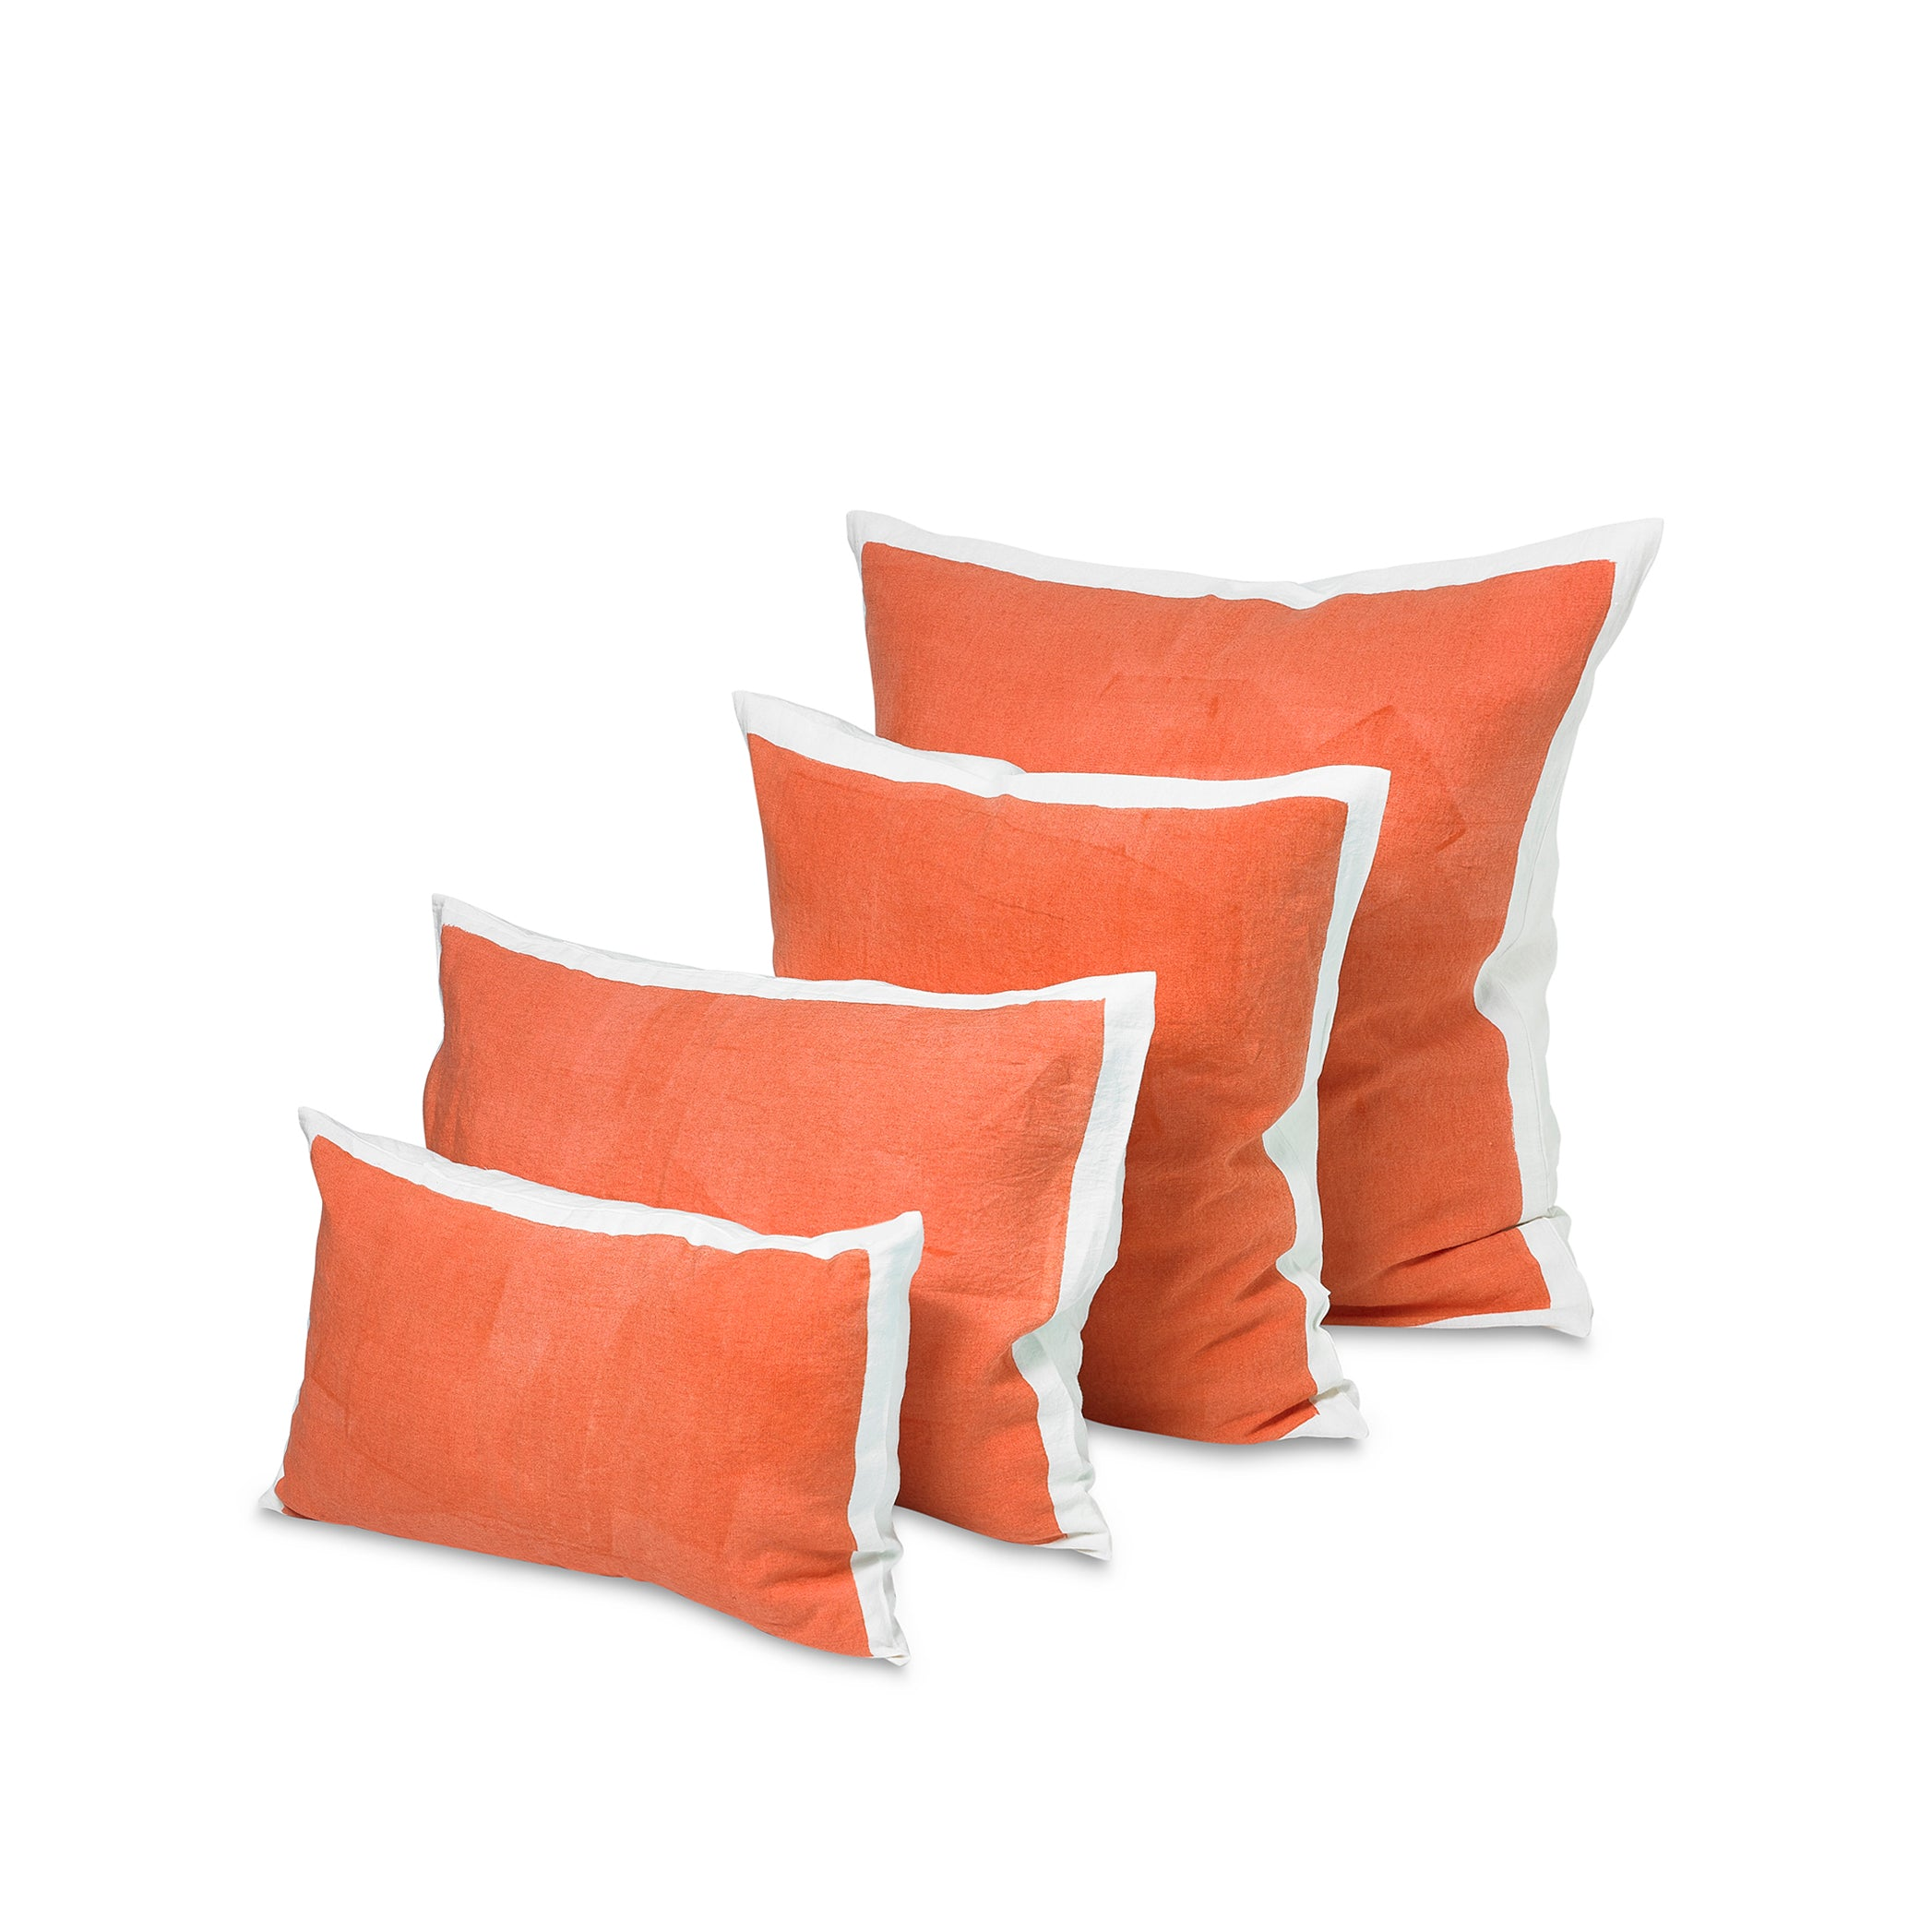 Hand Painted Linen Cushion Cover in Coral, 60cm x 60cm